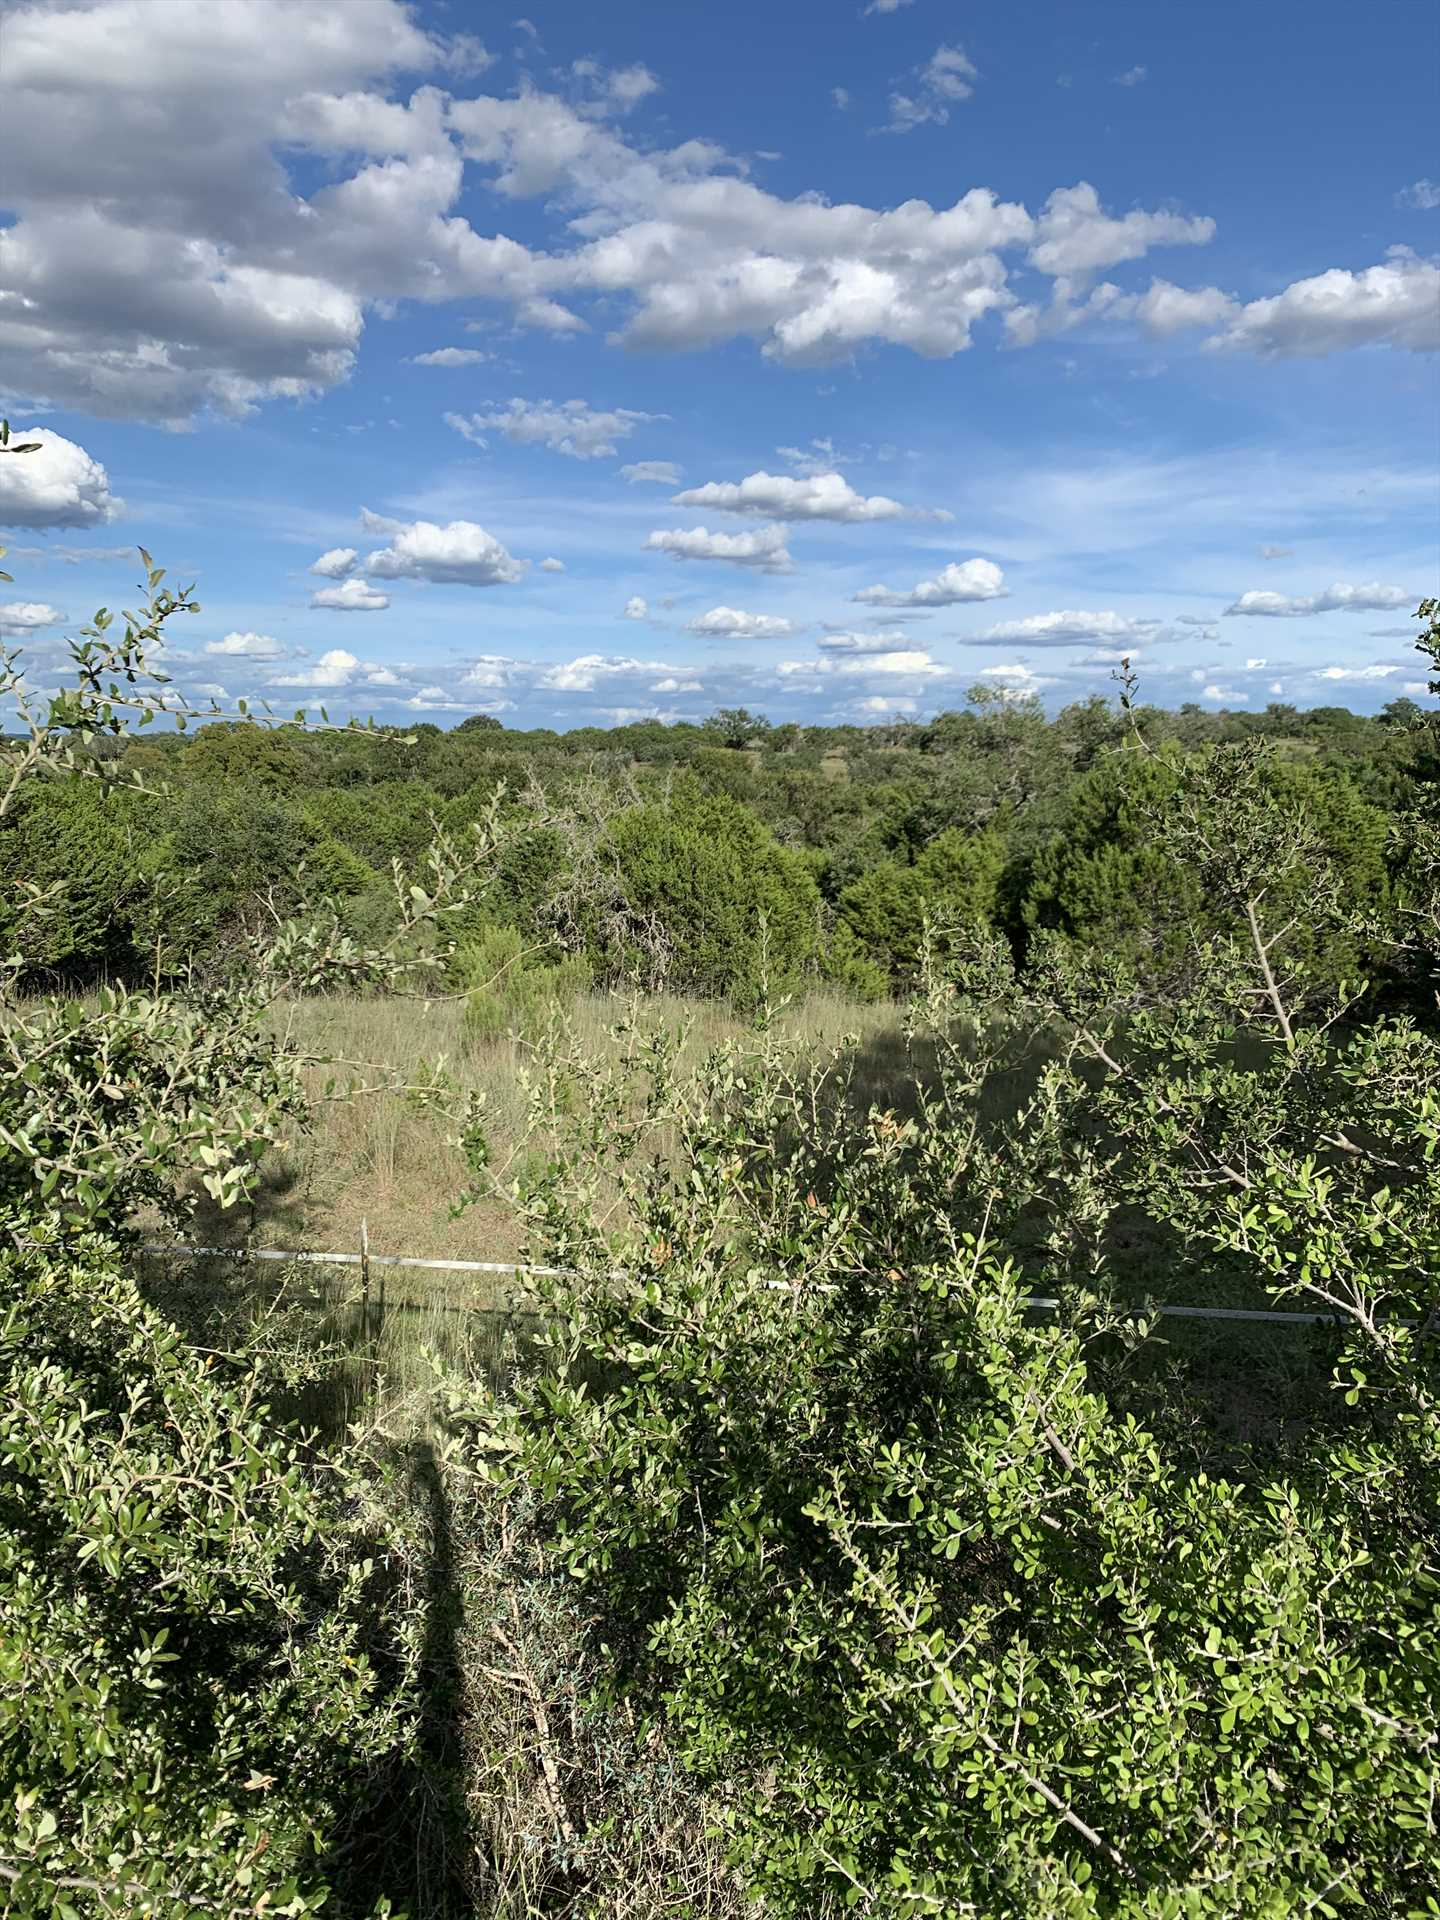 This is your view from the deck! 30 acres of ranch to explore and enjoy, as well as those inspiring Hill Country vistas.